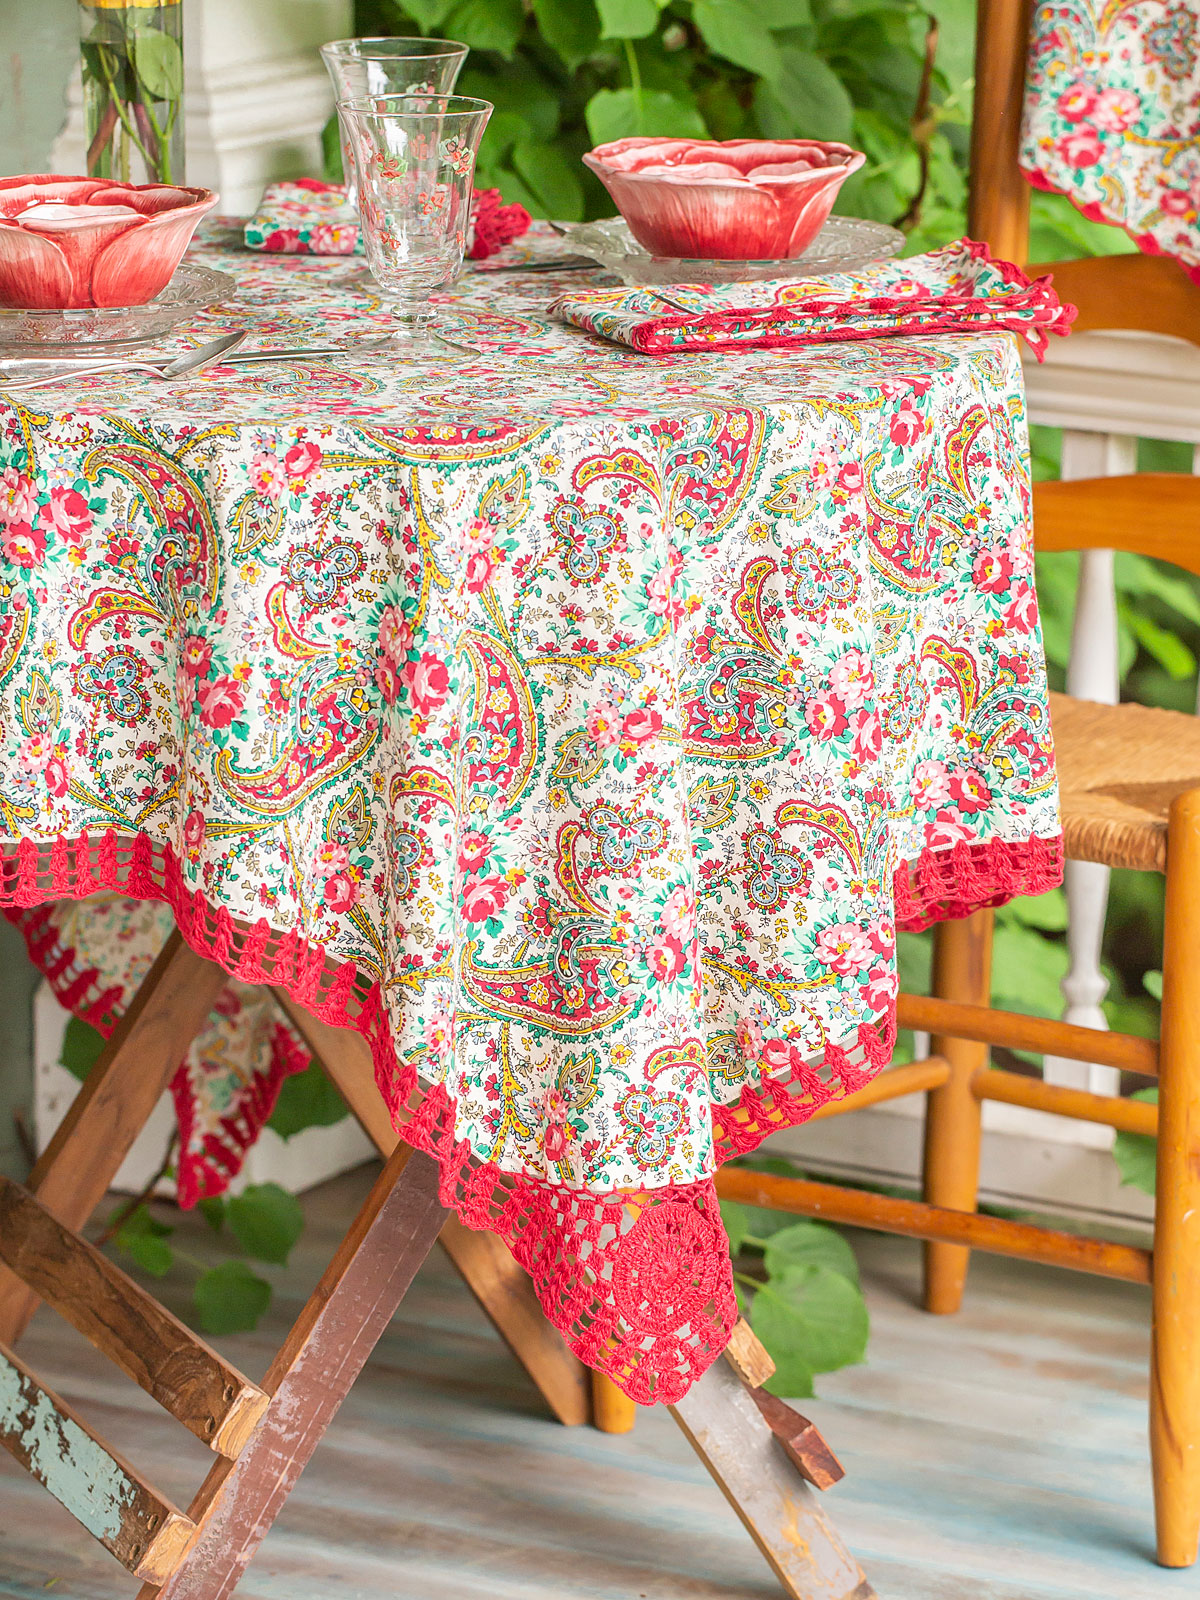 Garden Paisley Crochet Tablecloth